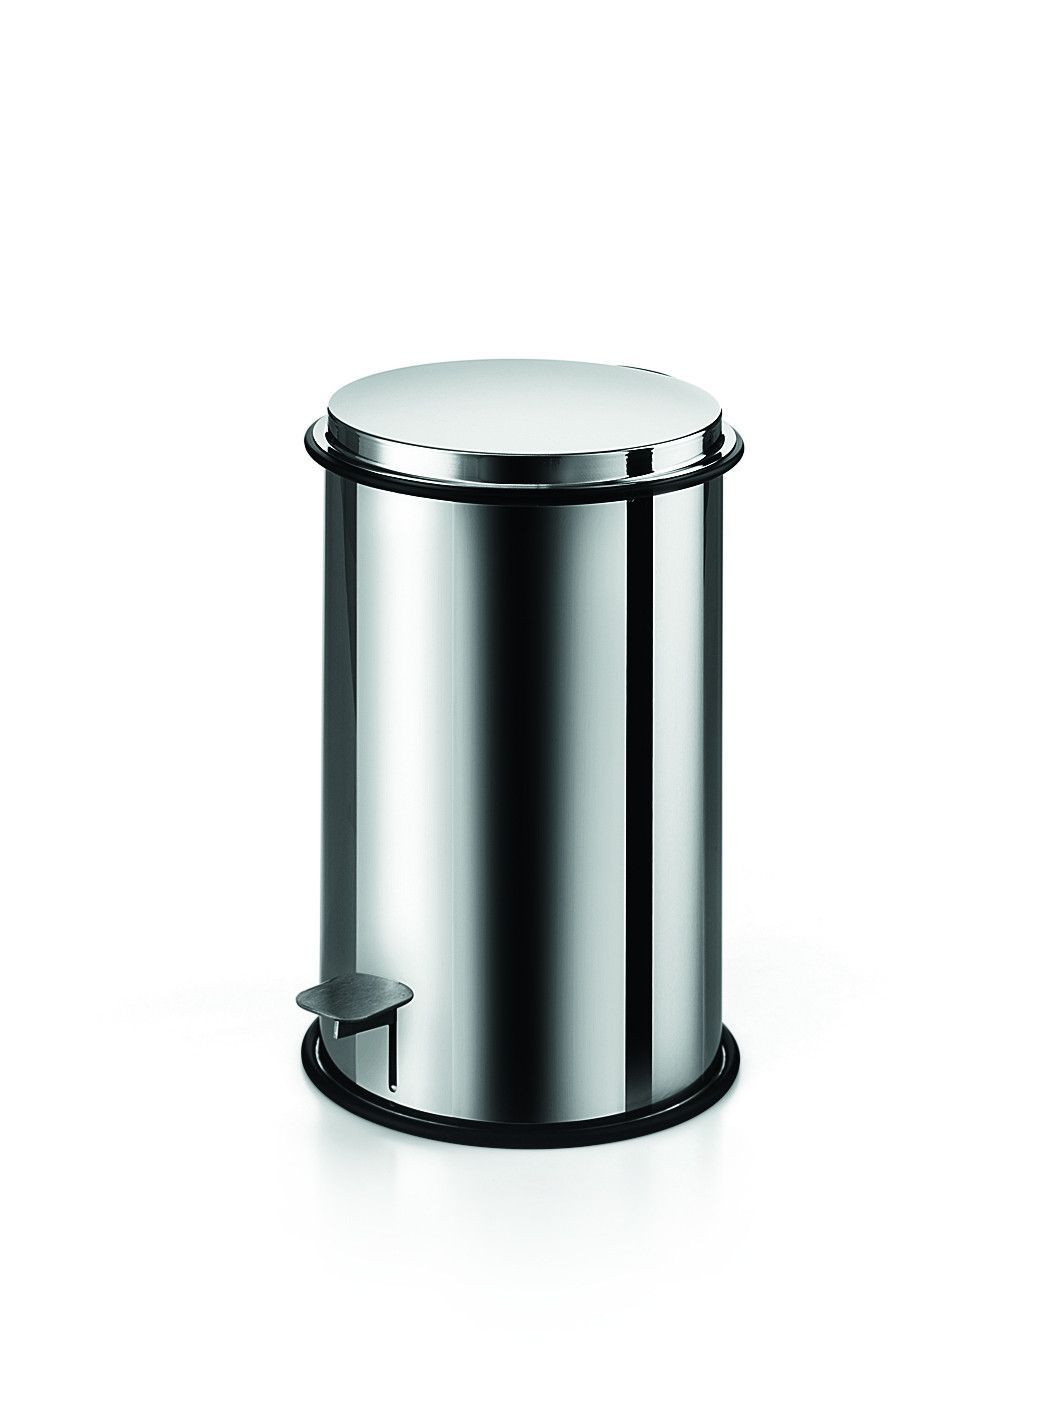 Abfalleimer Bad Chrom Lb Round Step Trash Can Stainless Steel Wastebasket W Lid